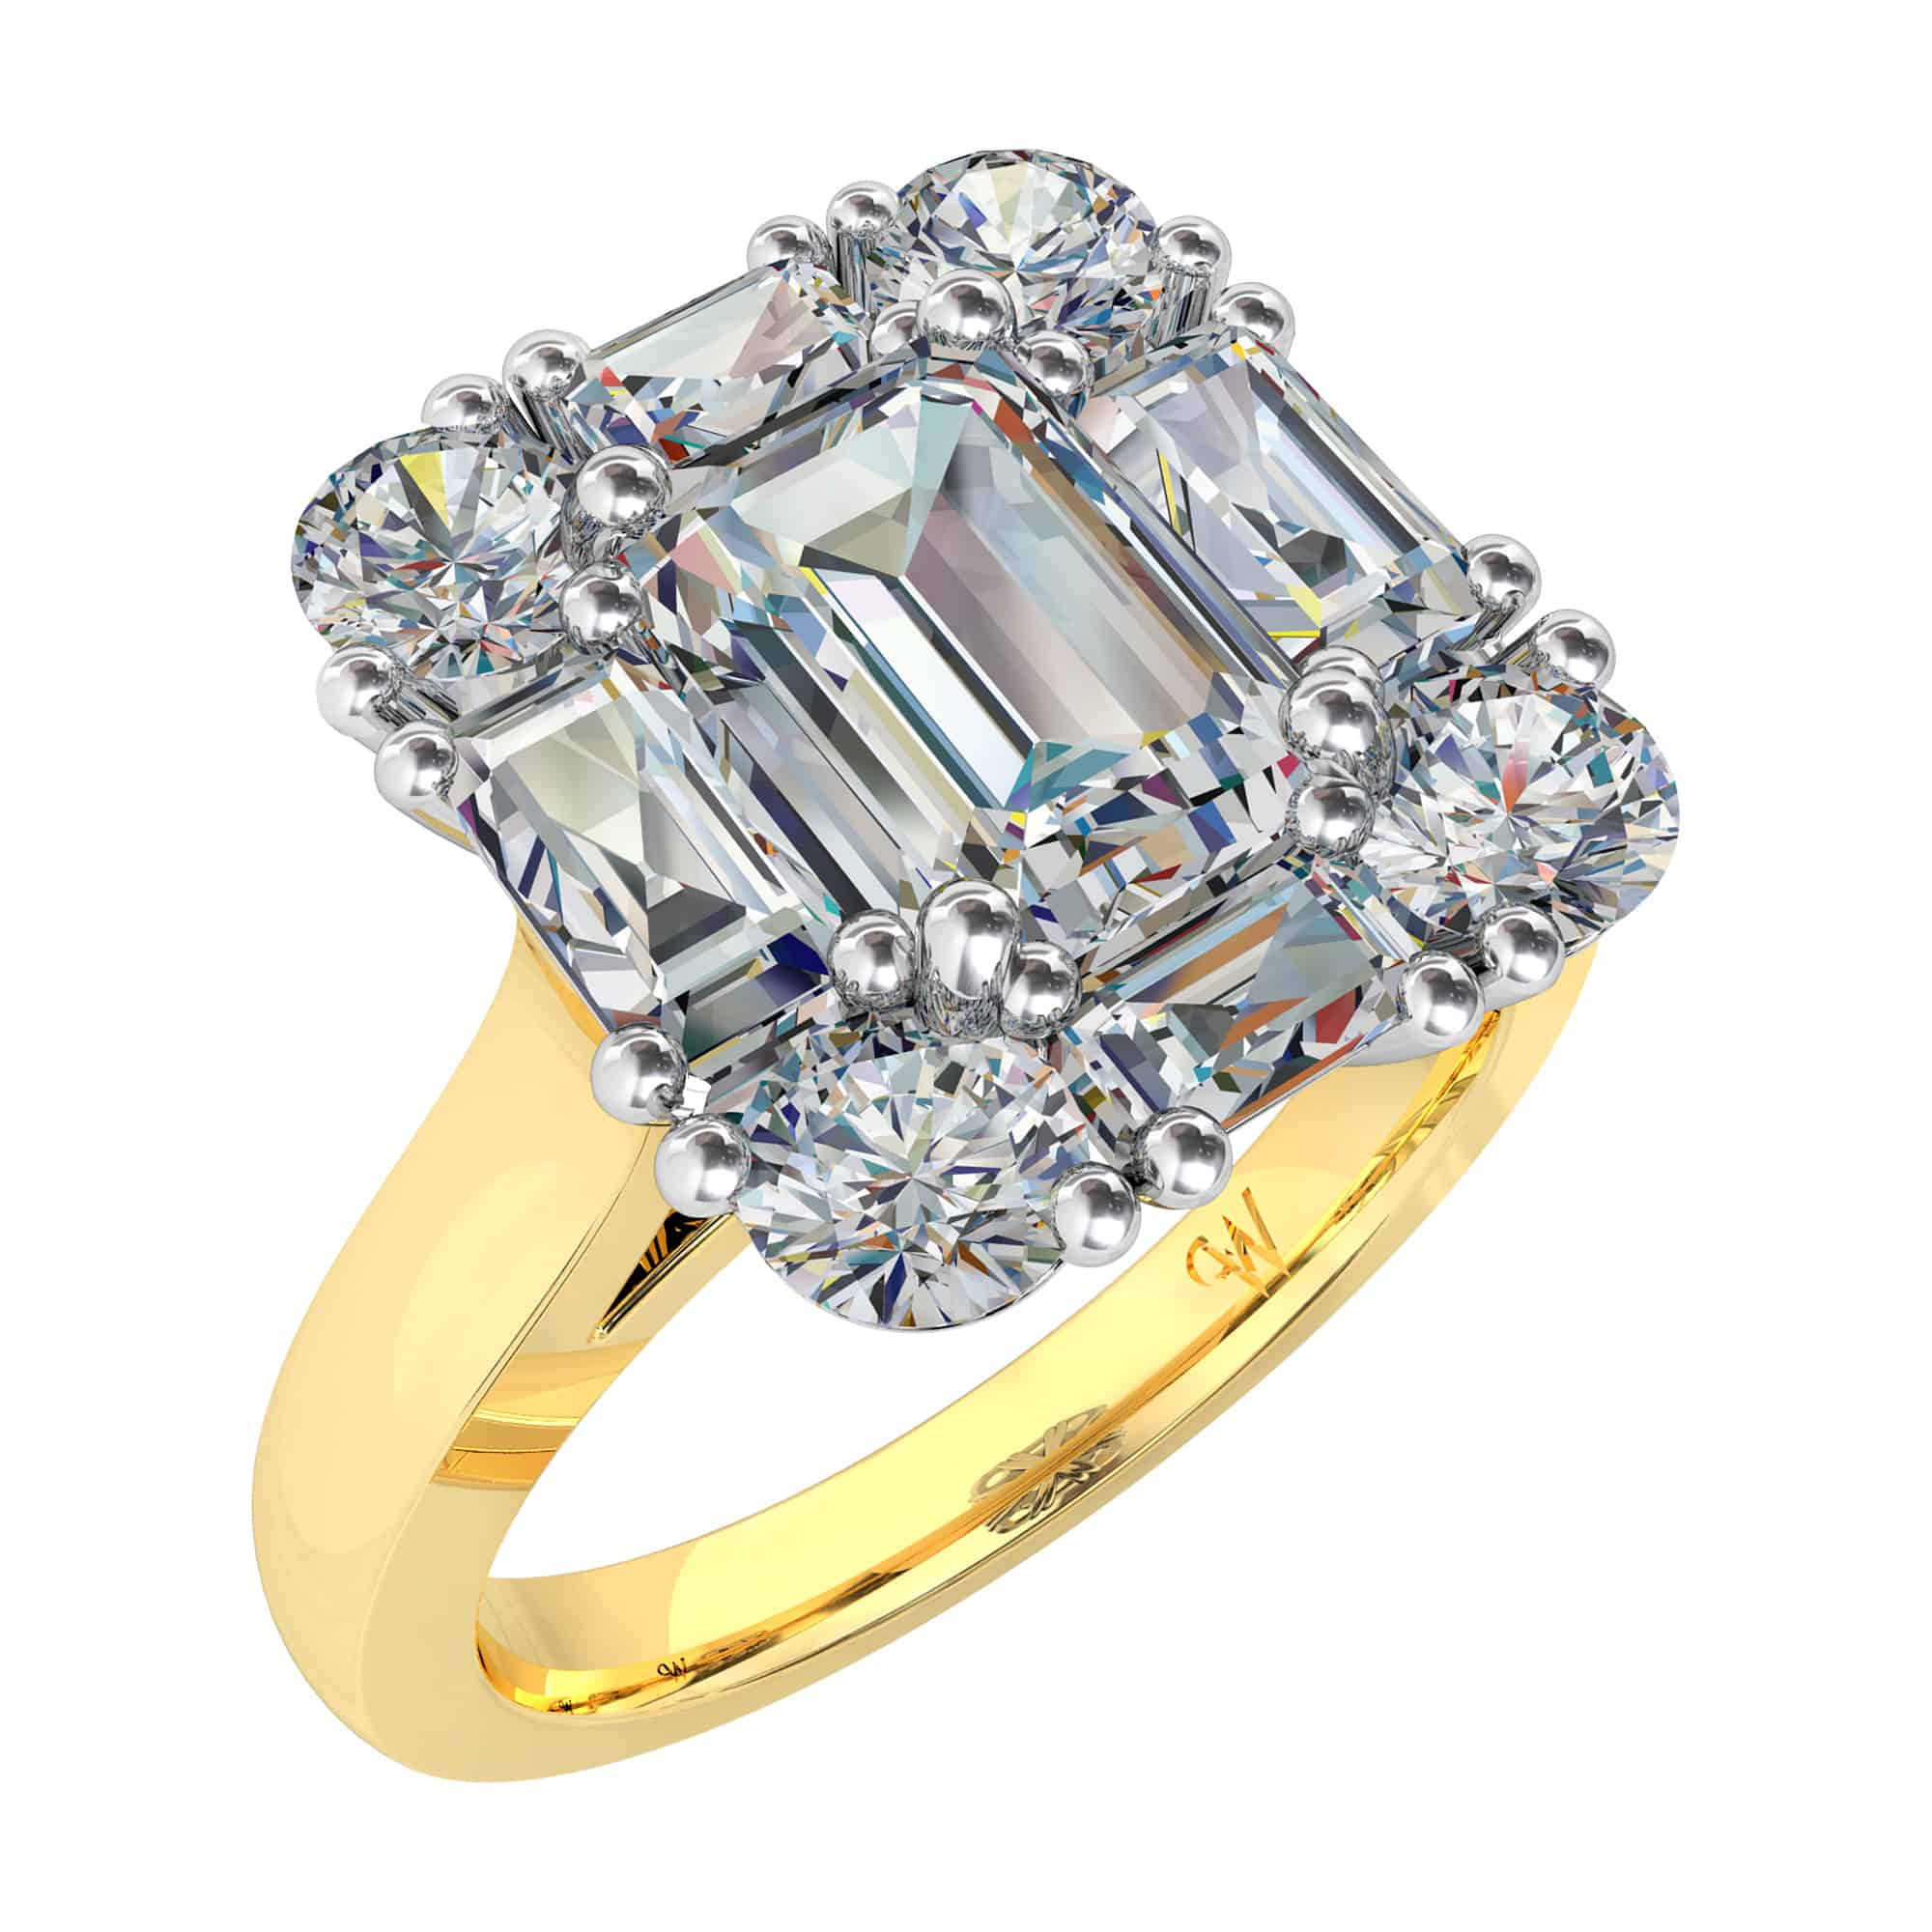 img for engagement asscher id jewelry master j middleton ring sale pippa style at cut diamond rings